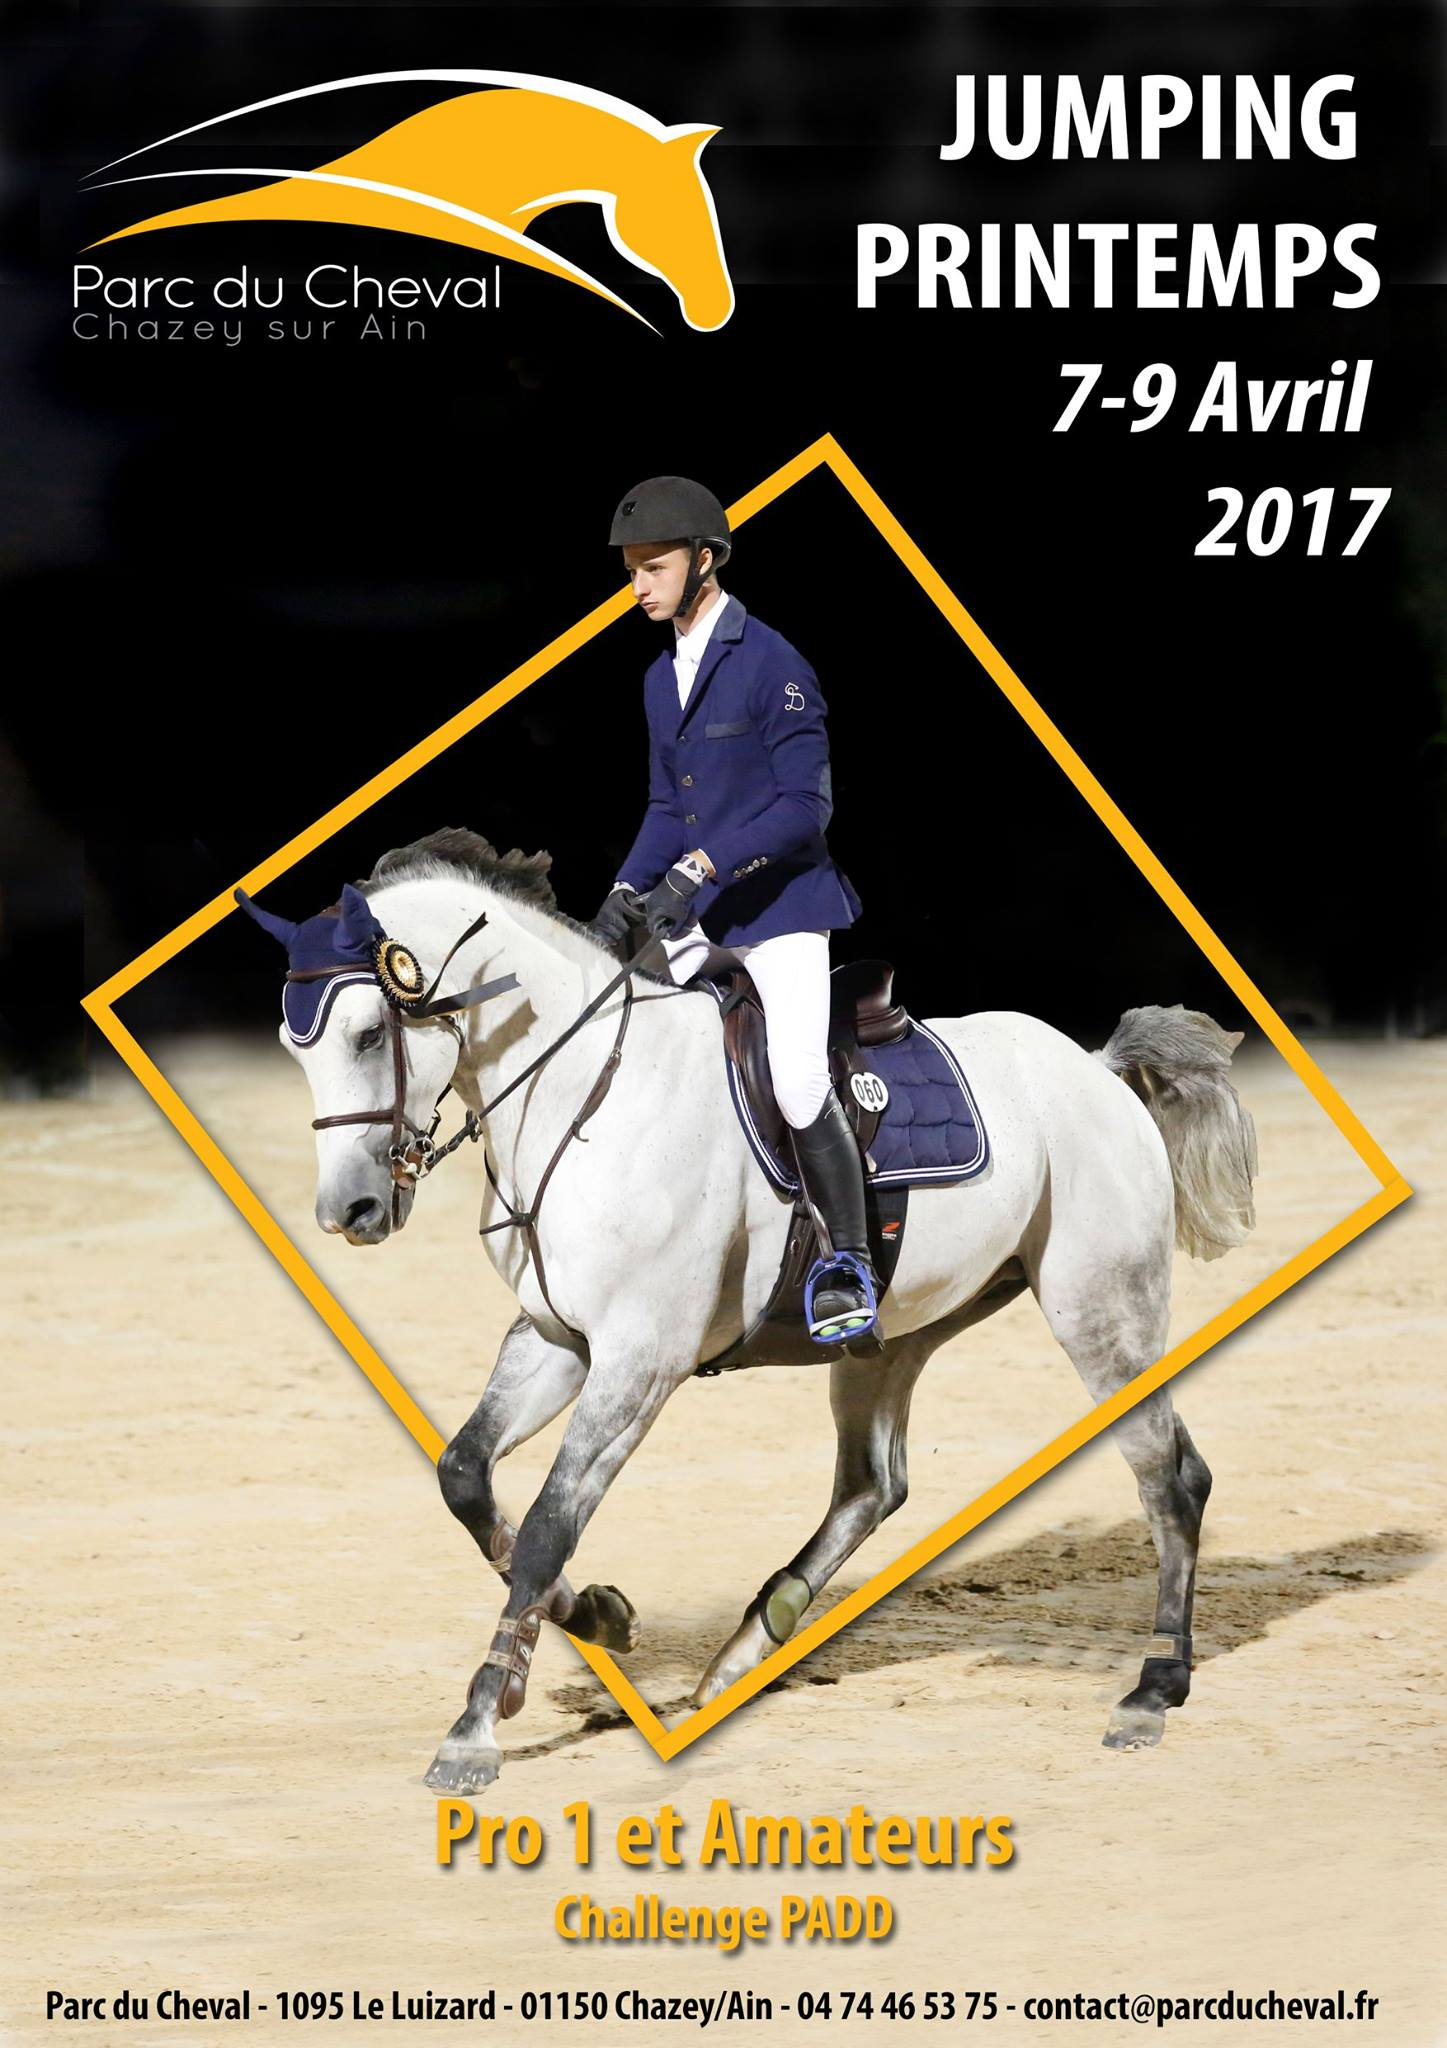 jumping-printemps-chazey-7-9-avril-2017